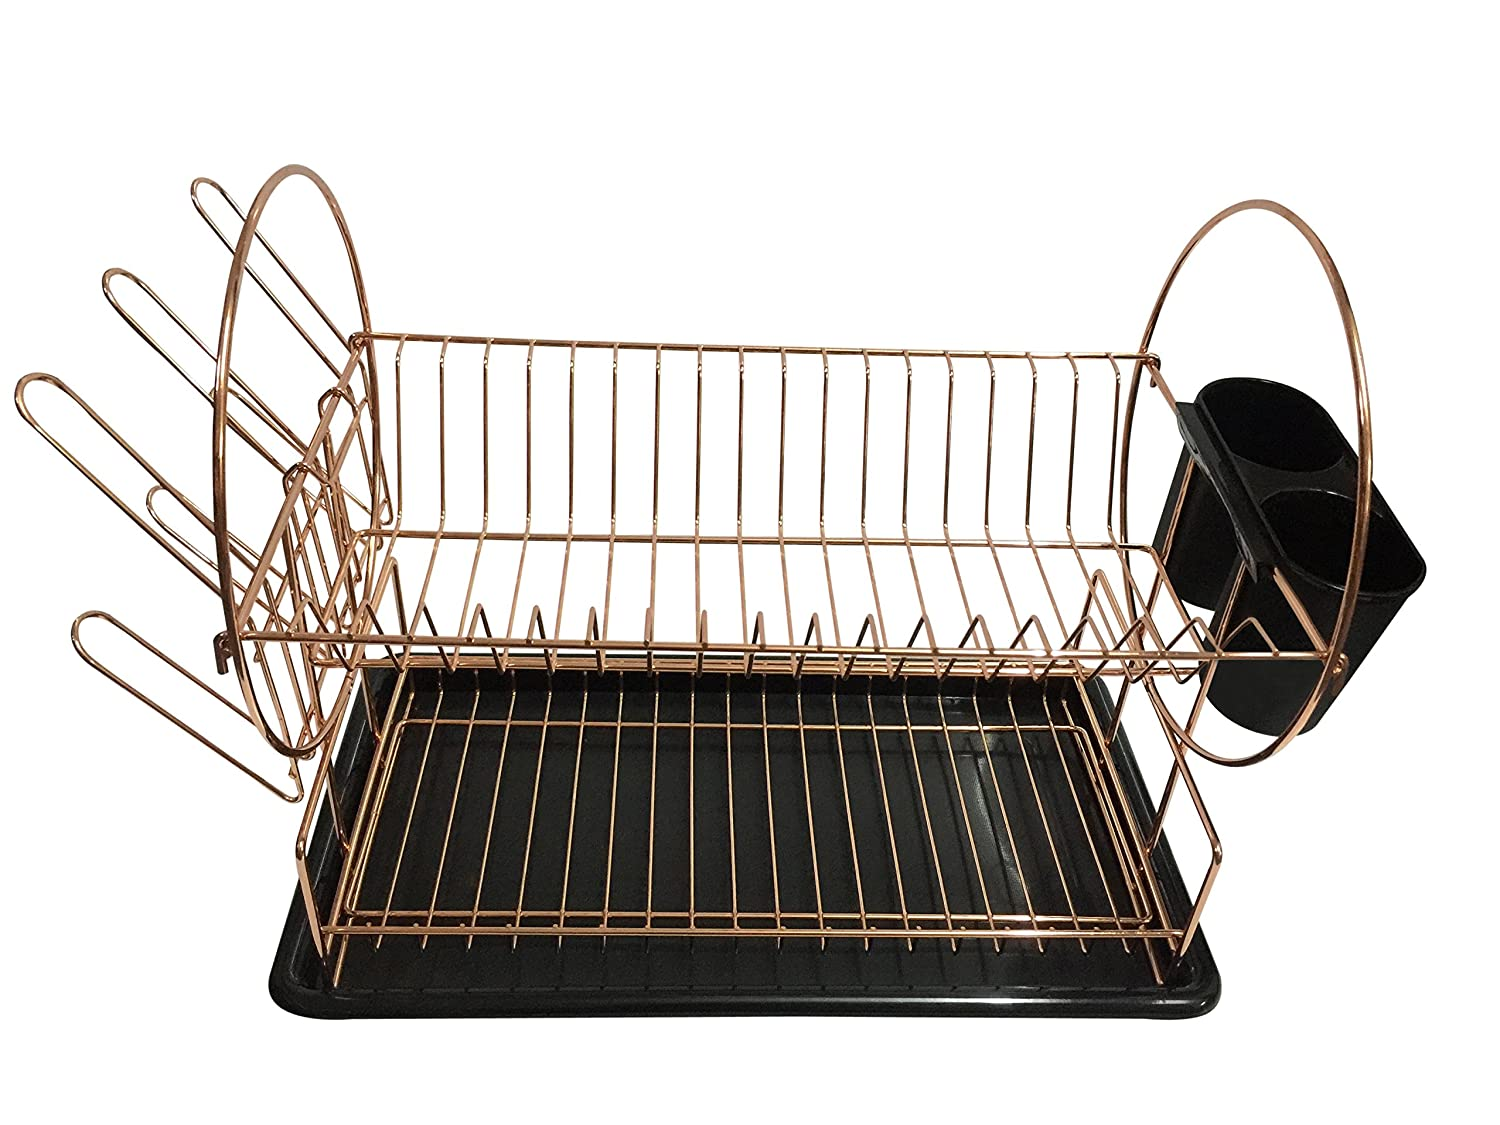 2 Tier Dish Drainer / Dish Rack with Removable Drip Tray and Cutlery Holder (Black) Sasma Ltd